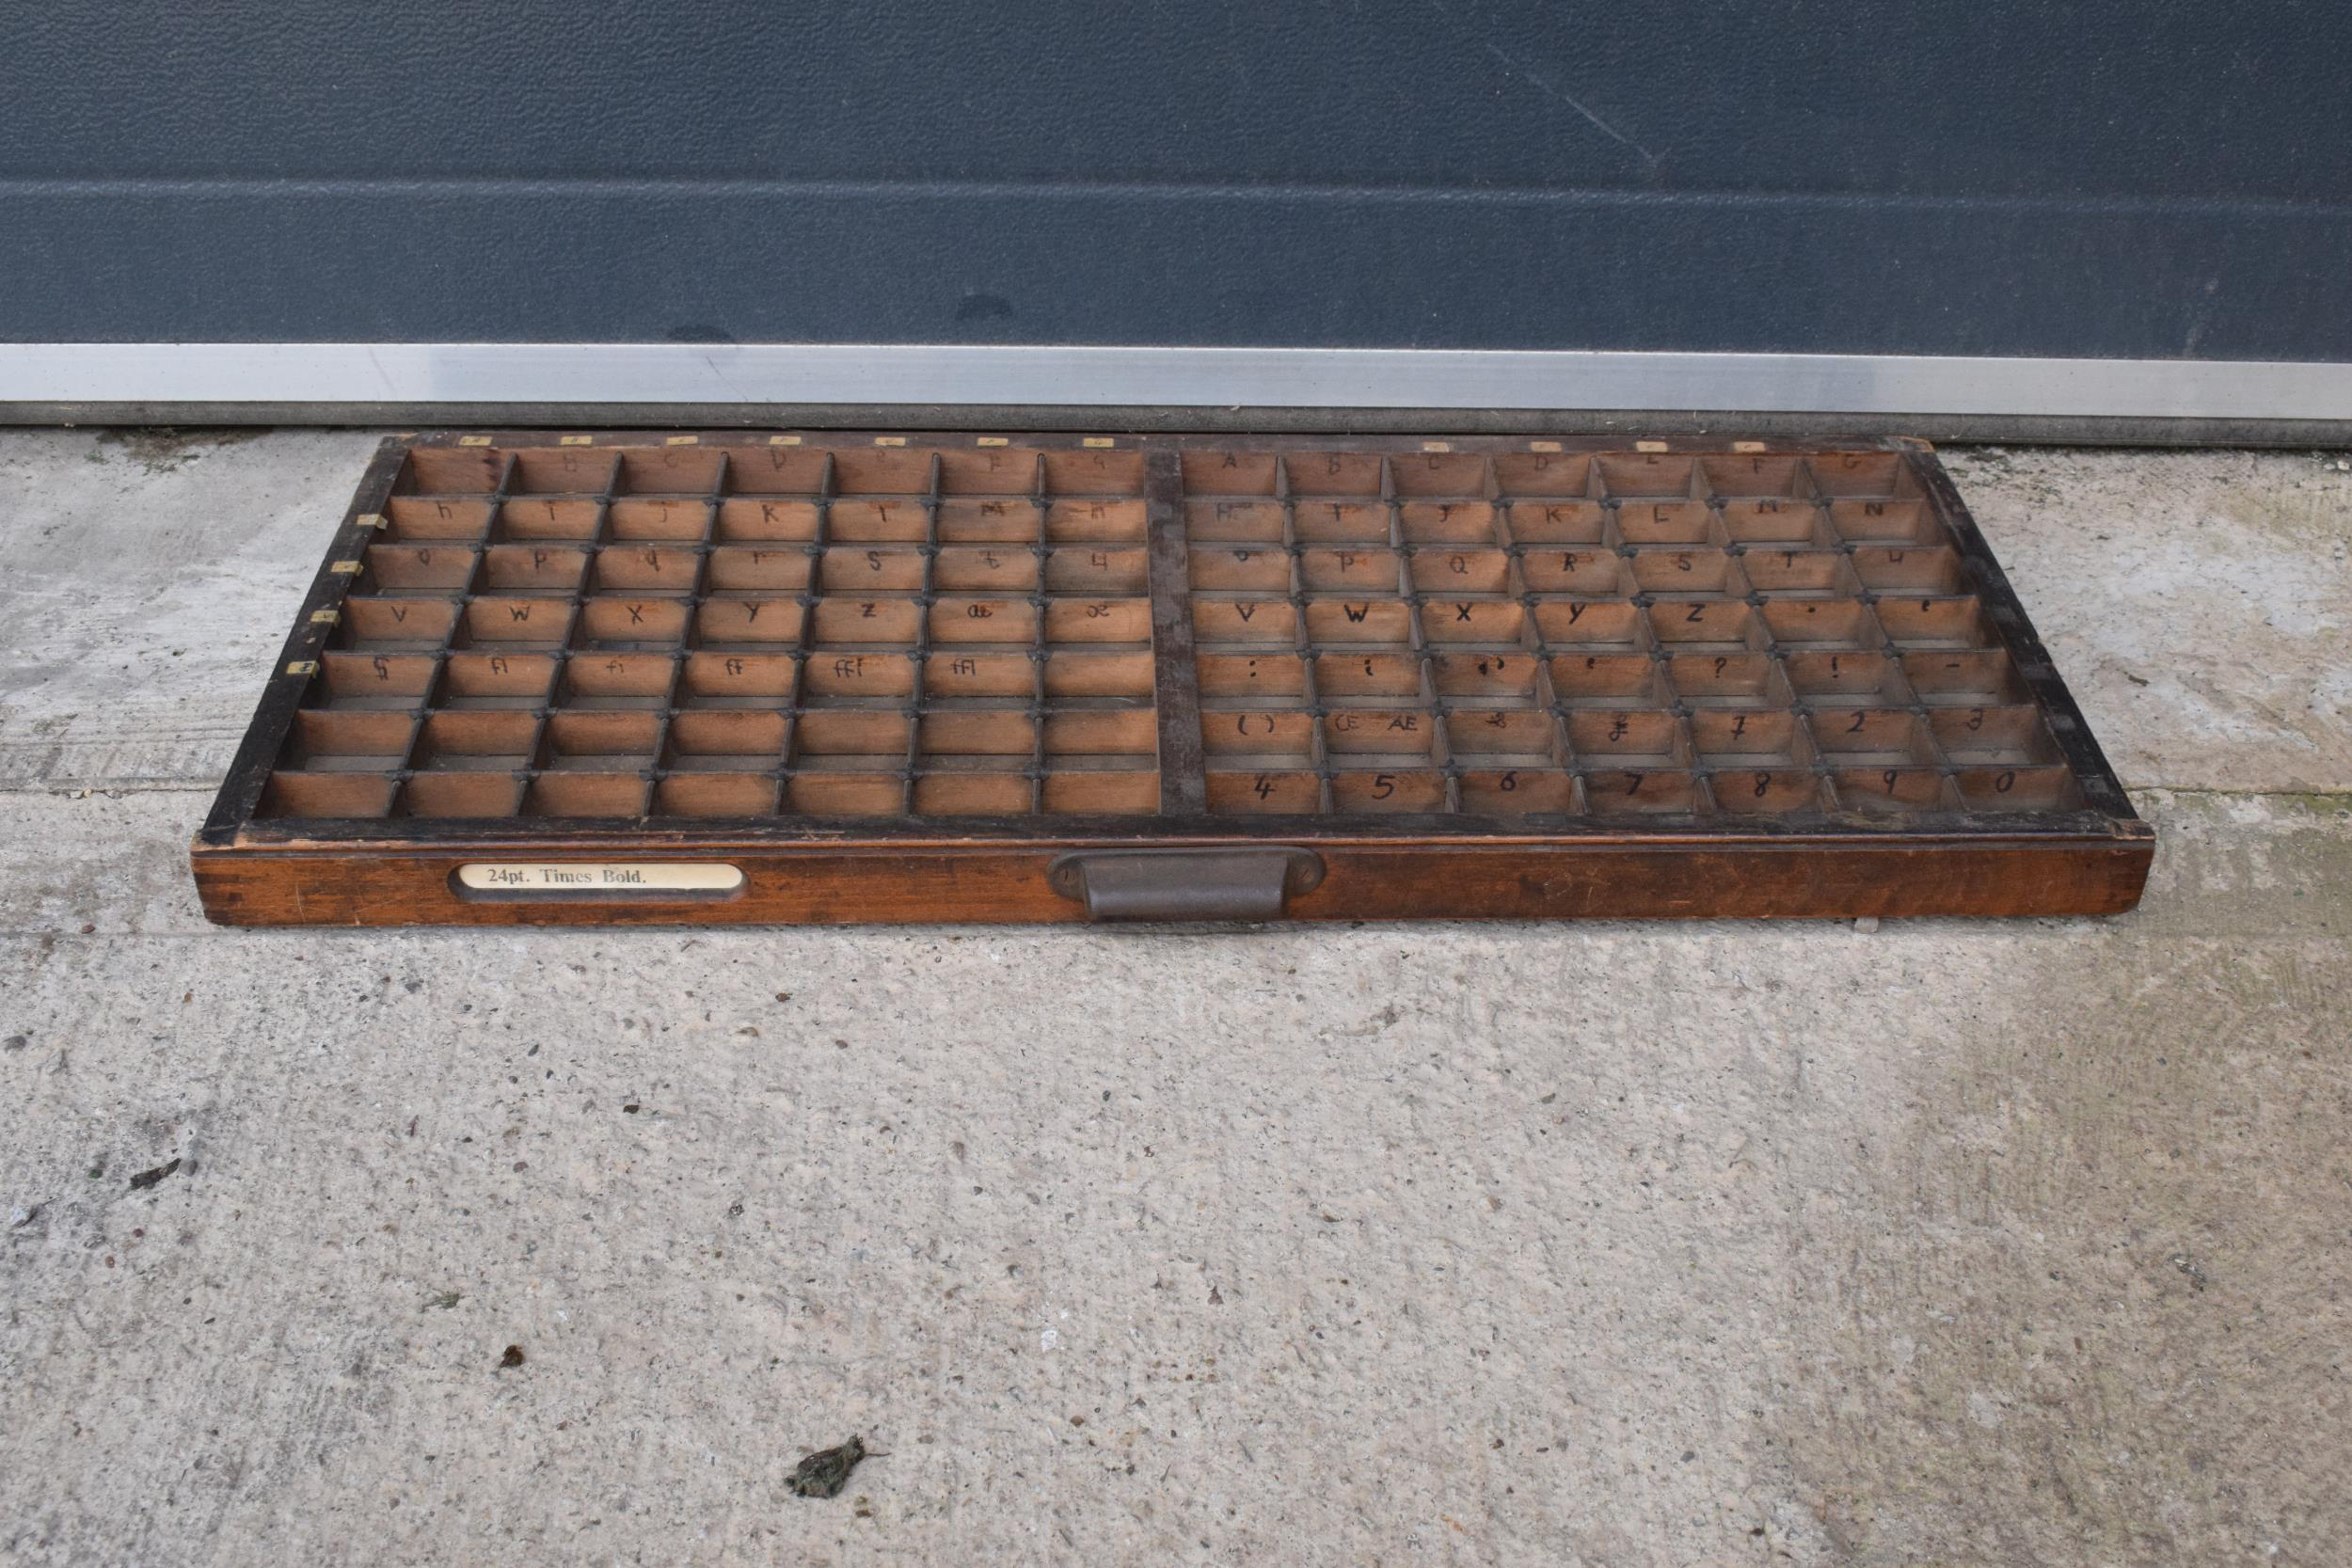 An early 20th century wooden printers letter block tray / rack with brass tacts. 83 x 39cm, (1271).